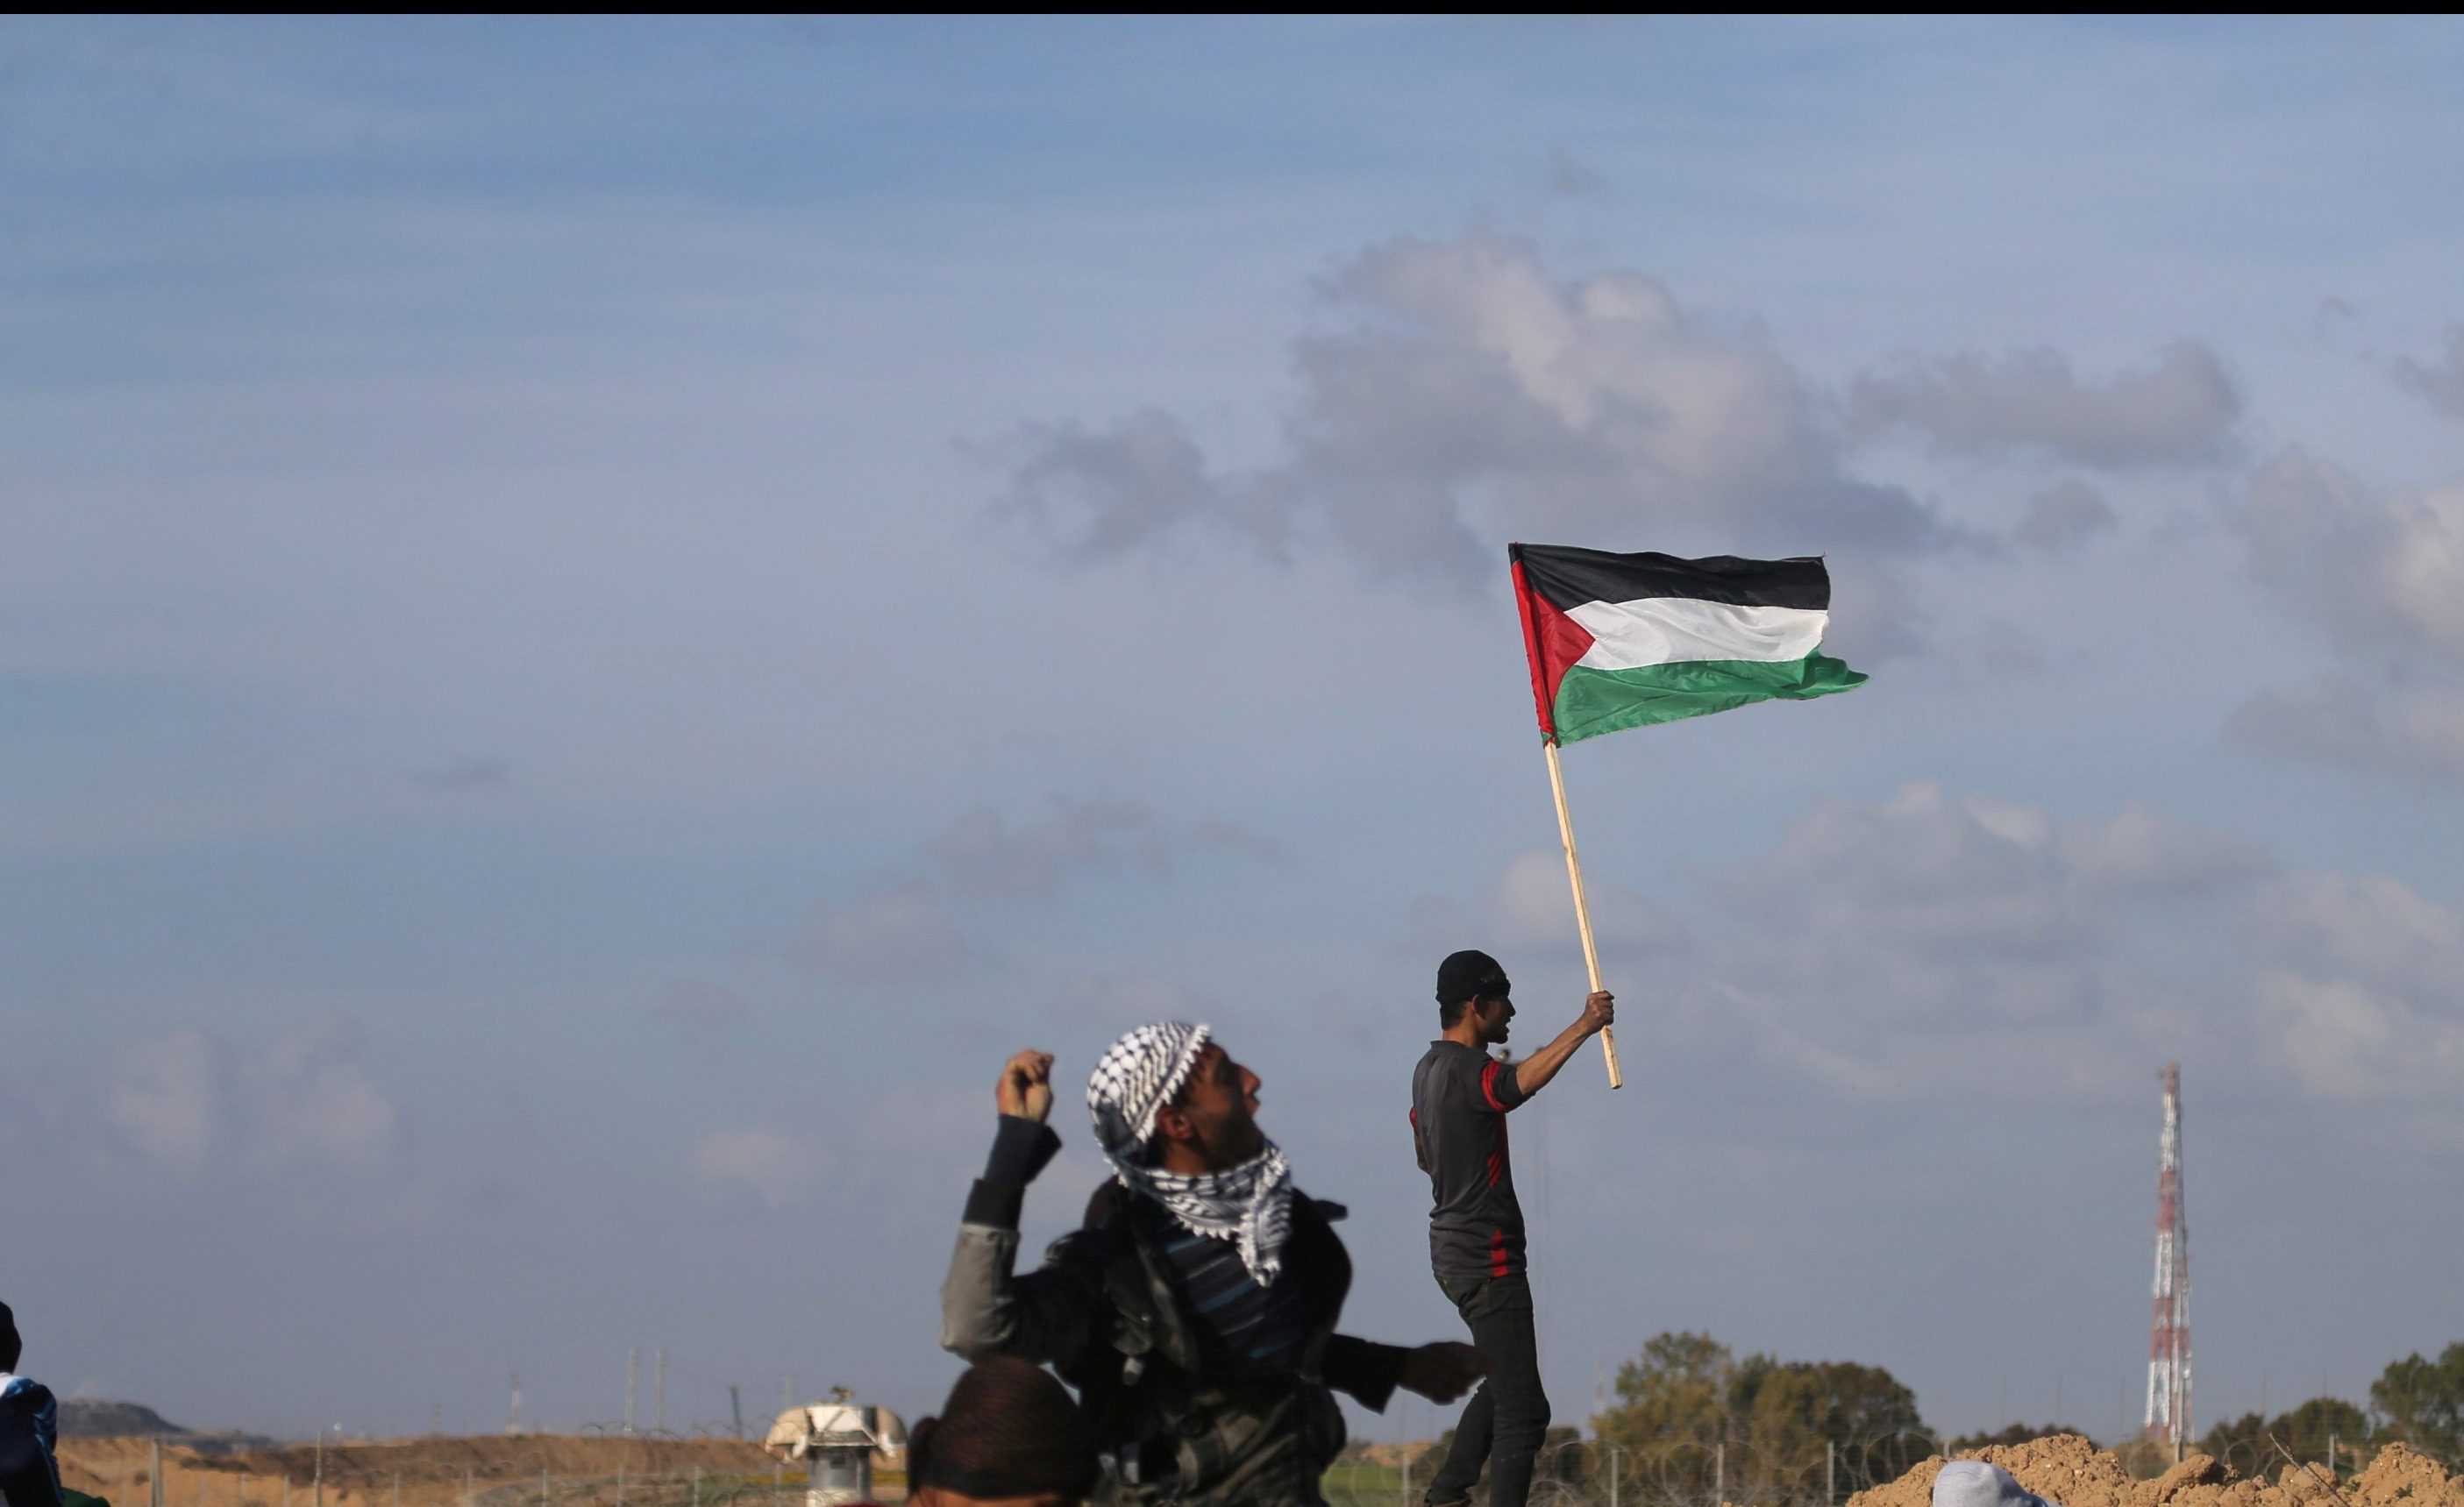 A demonstrator waves a Palestinian flag during clashes with Israeli troops at a protest against U.S. President Donald Trump's decision on Jerusalem, near the border with Israel in the southern Gaza Strip March 16, 2018. REUTERS/Ibraheem Abu Mustafa - RC1D250522B0